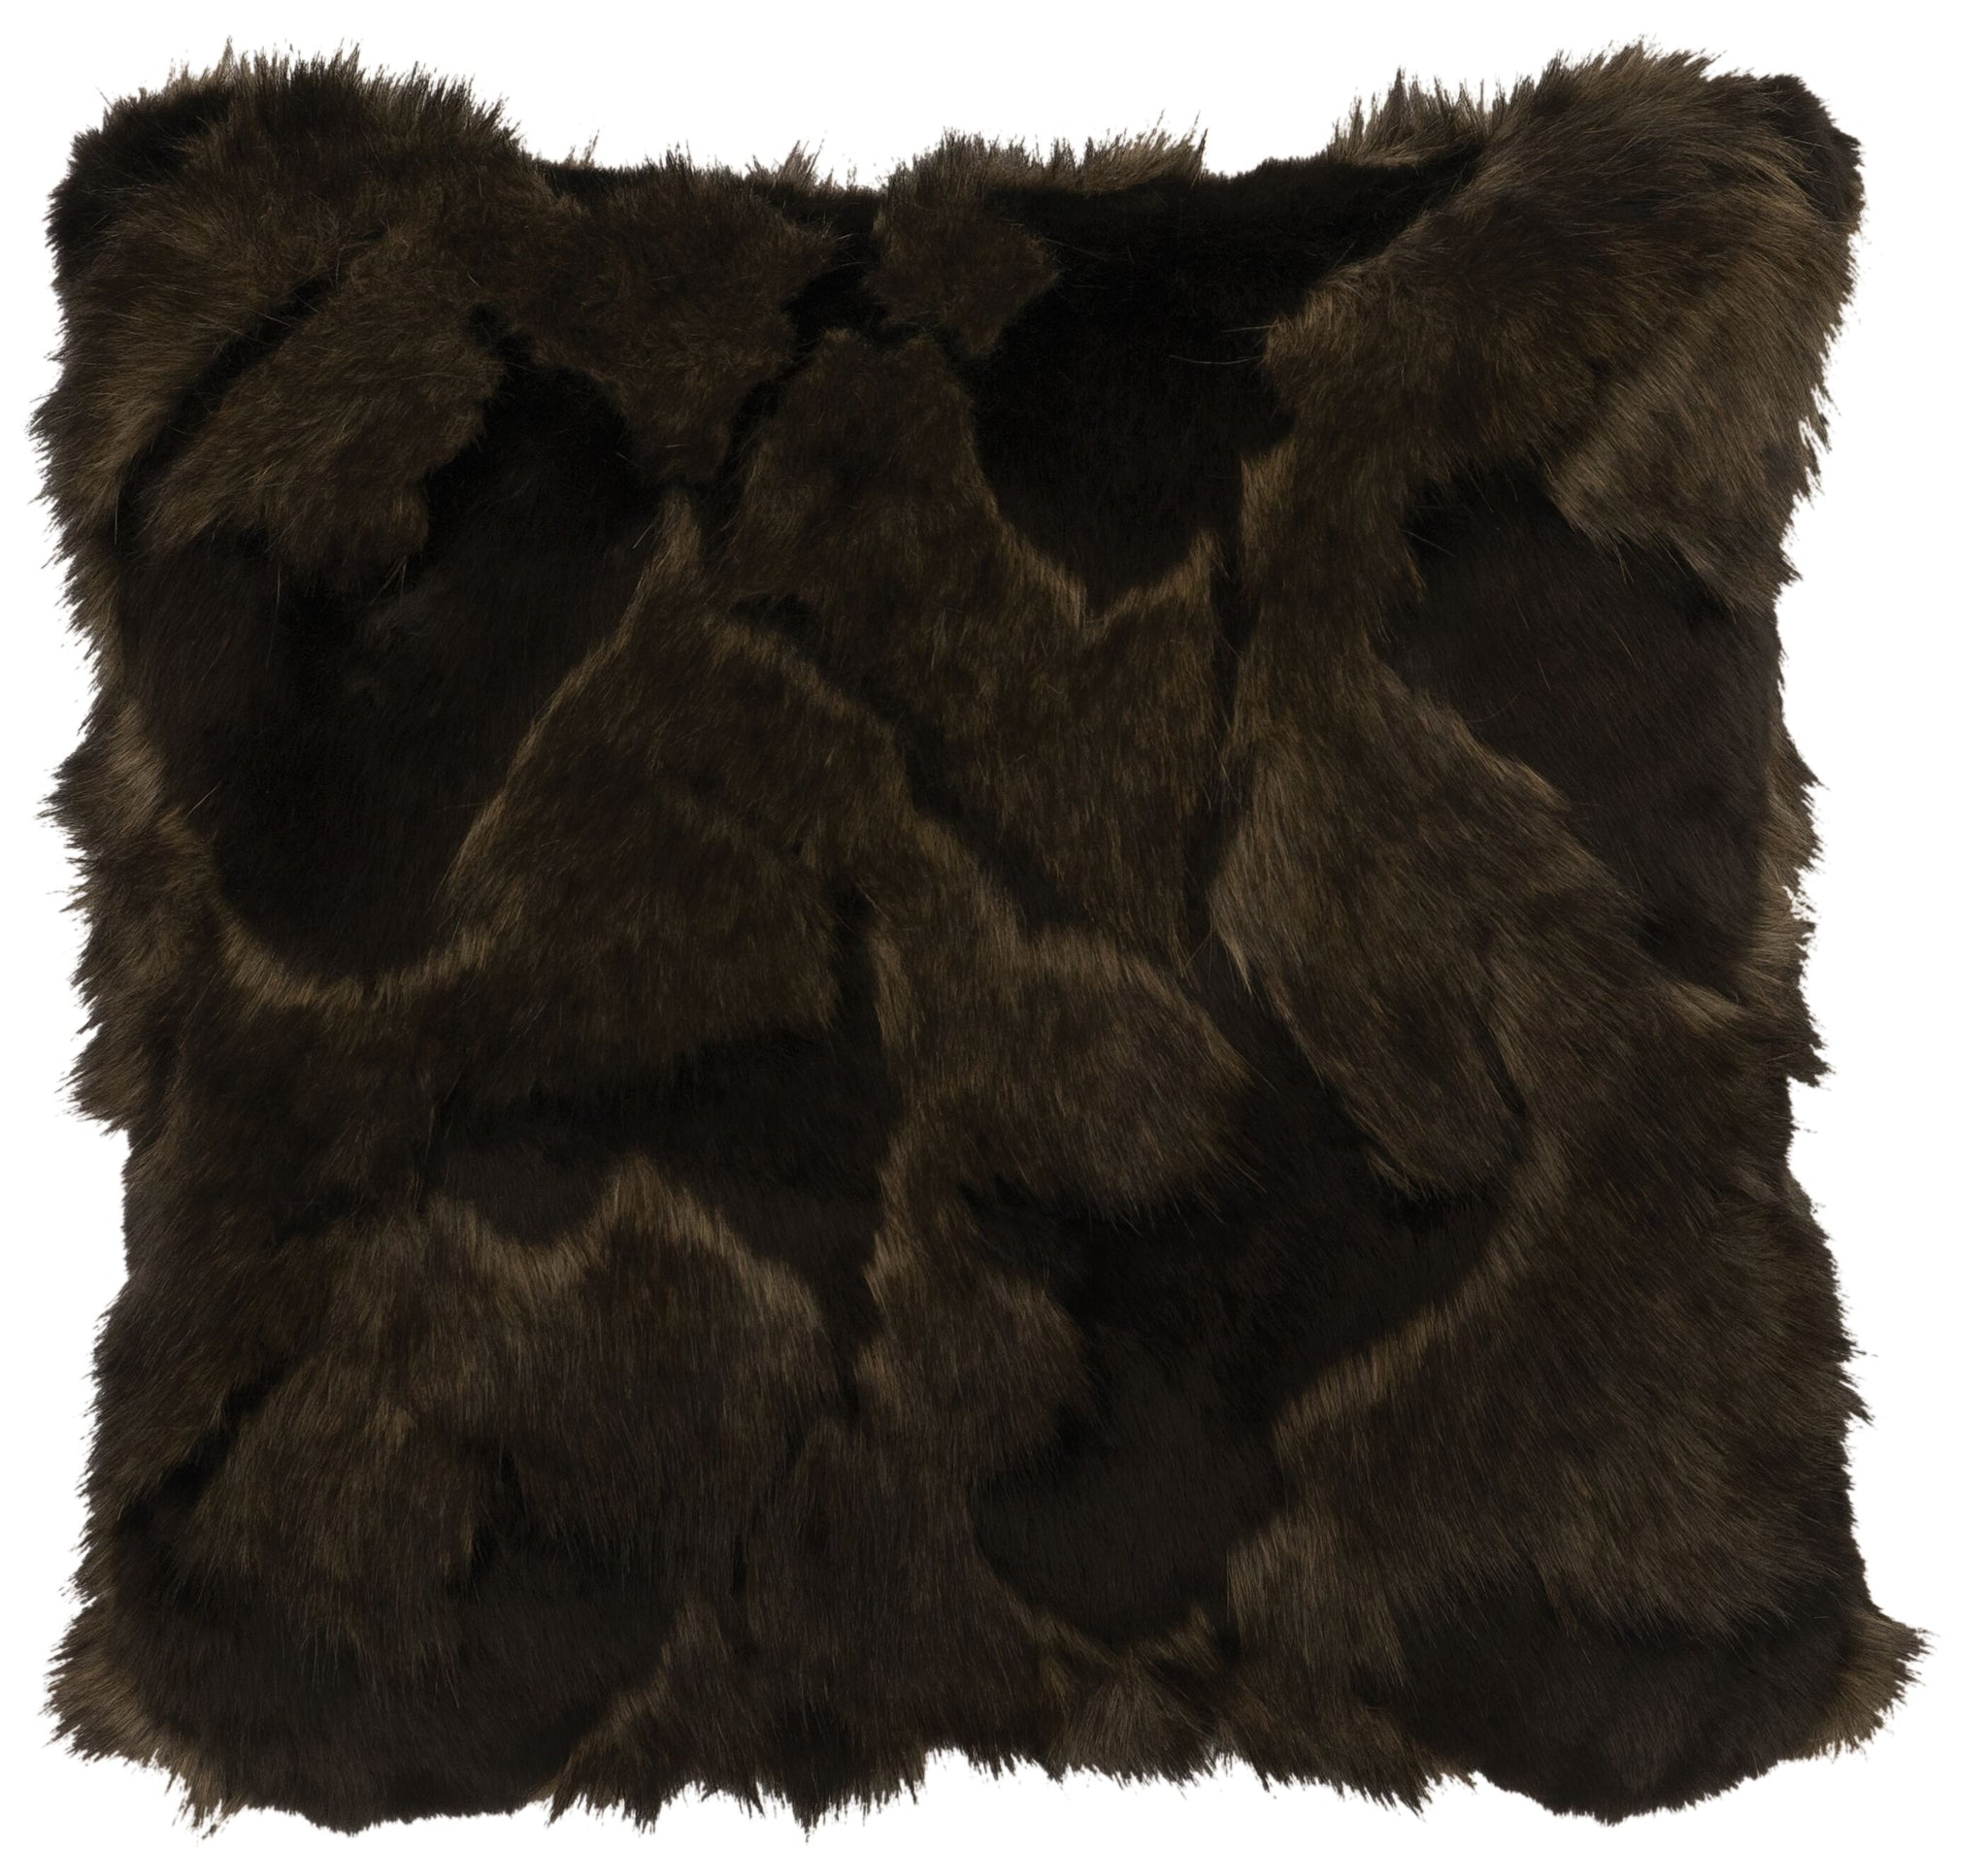 Onyx Marbled Fox Faux Fur Wooded River - unique linens online